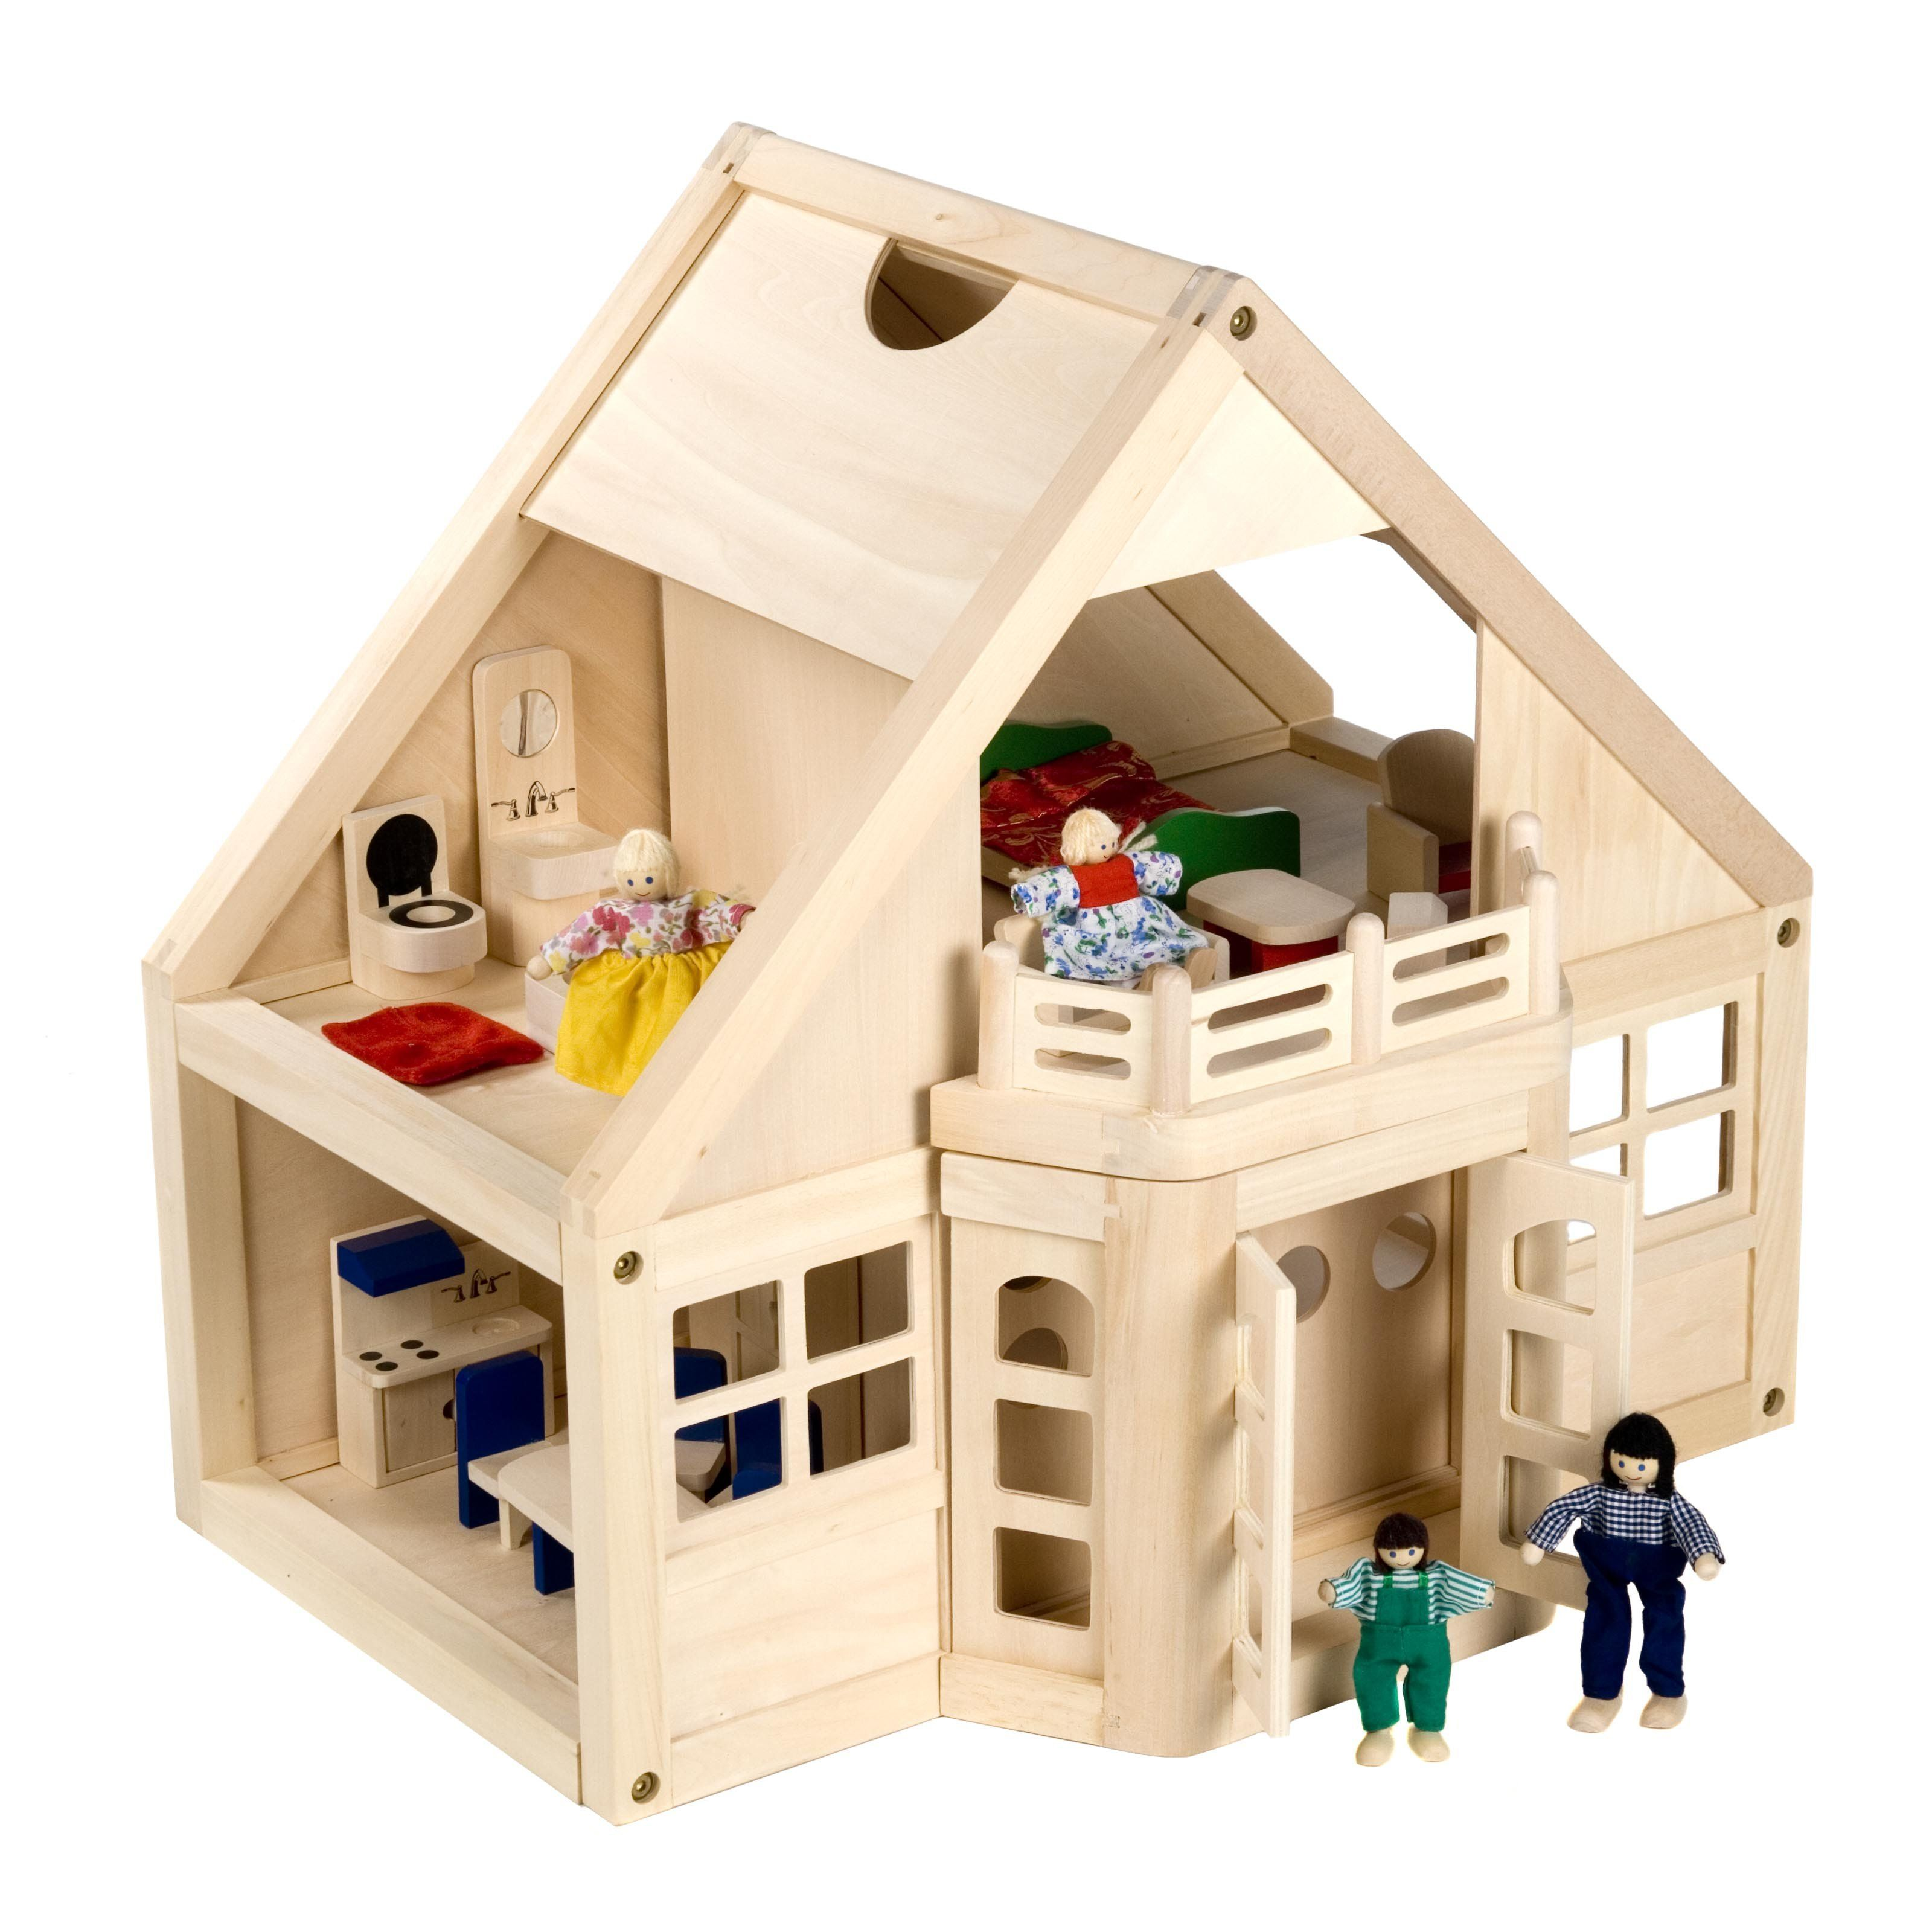 cheap wooden dollhouse furniture. Melissa And Doug Furnished Wooden Dollhouse Kit $99.99 Cheap Furniture